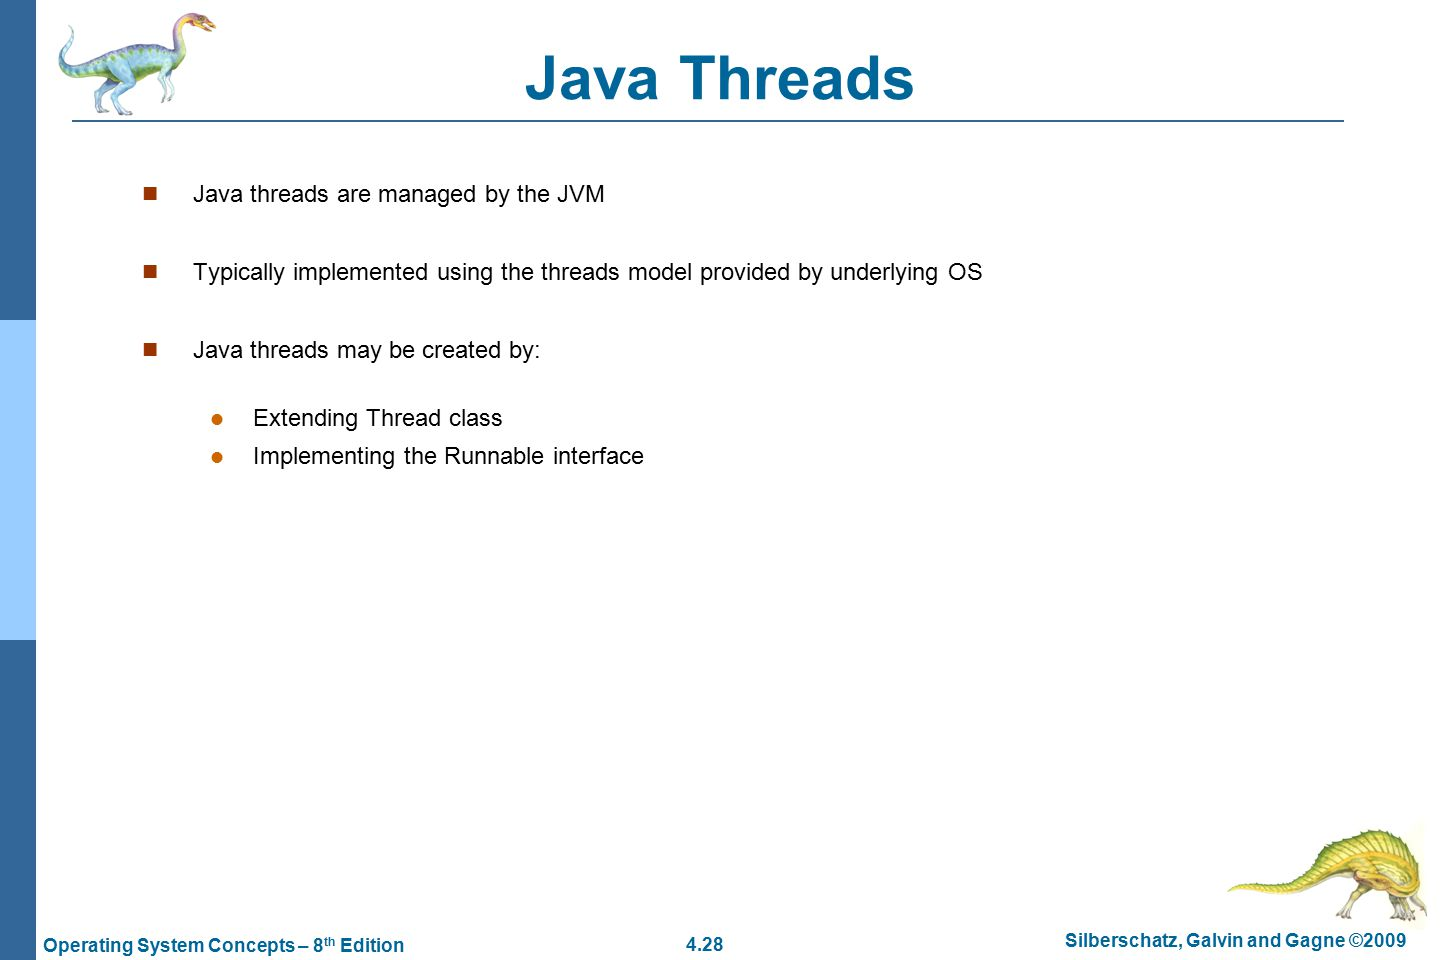 4.28 Silberschatz, Galvin and Gagne ©2009 Operating System Concepts – 8 th Edition Java Threads Java threads are managed by the JVM Typically implemented using the threads model provided by underlying OS Java threads may be created by: Extending Thread class Implementing the Runnable interface